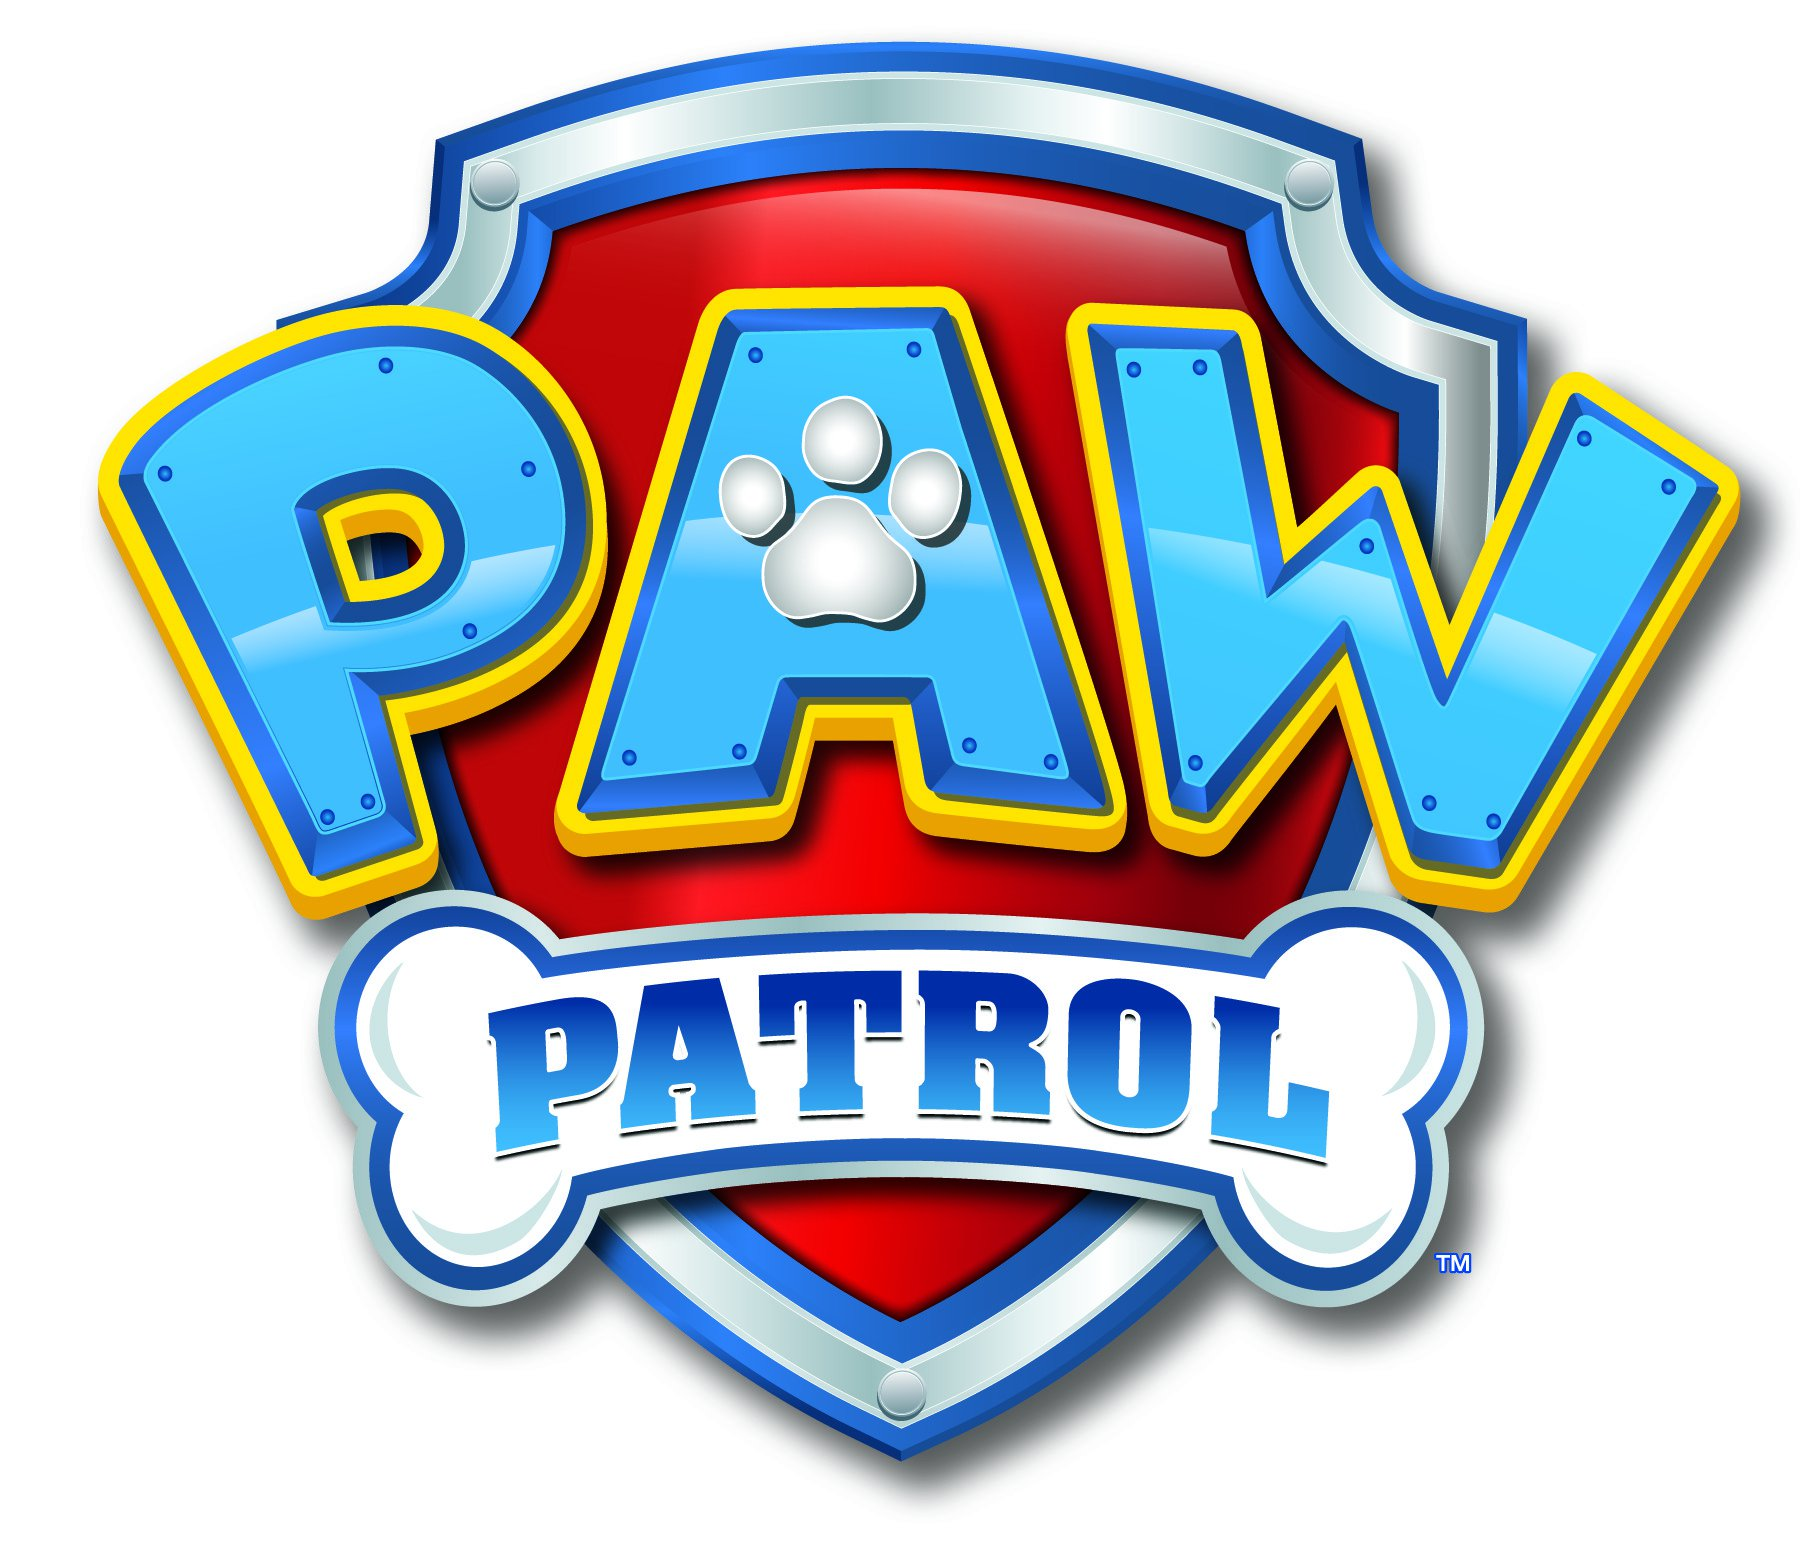 Paw patrol badge clip art clipart library Paw patrol badge clipart - ClipartFest clipart library